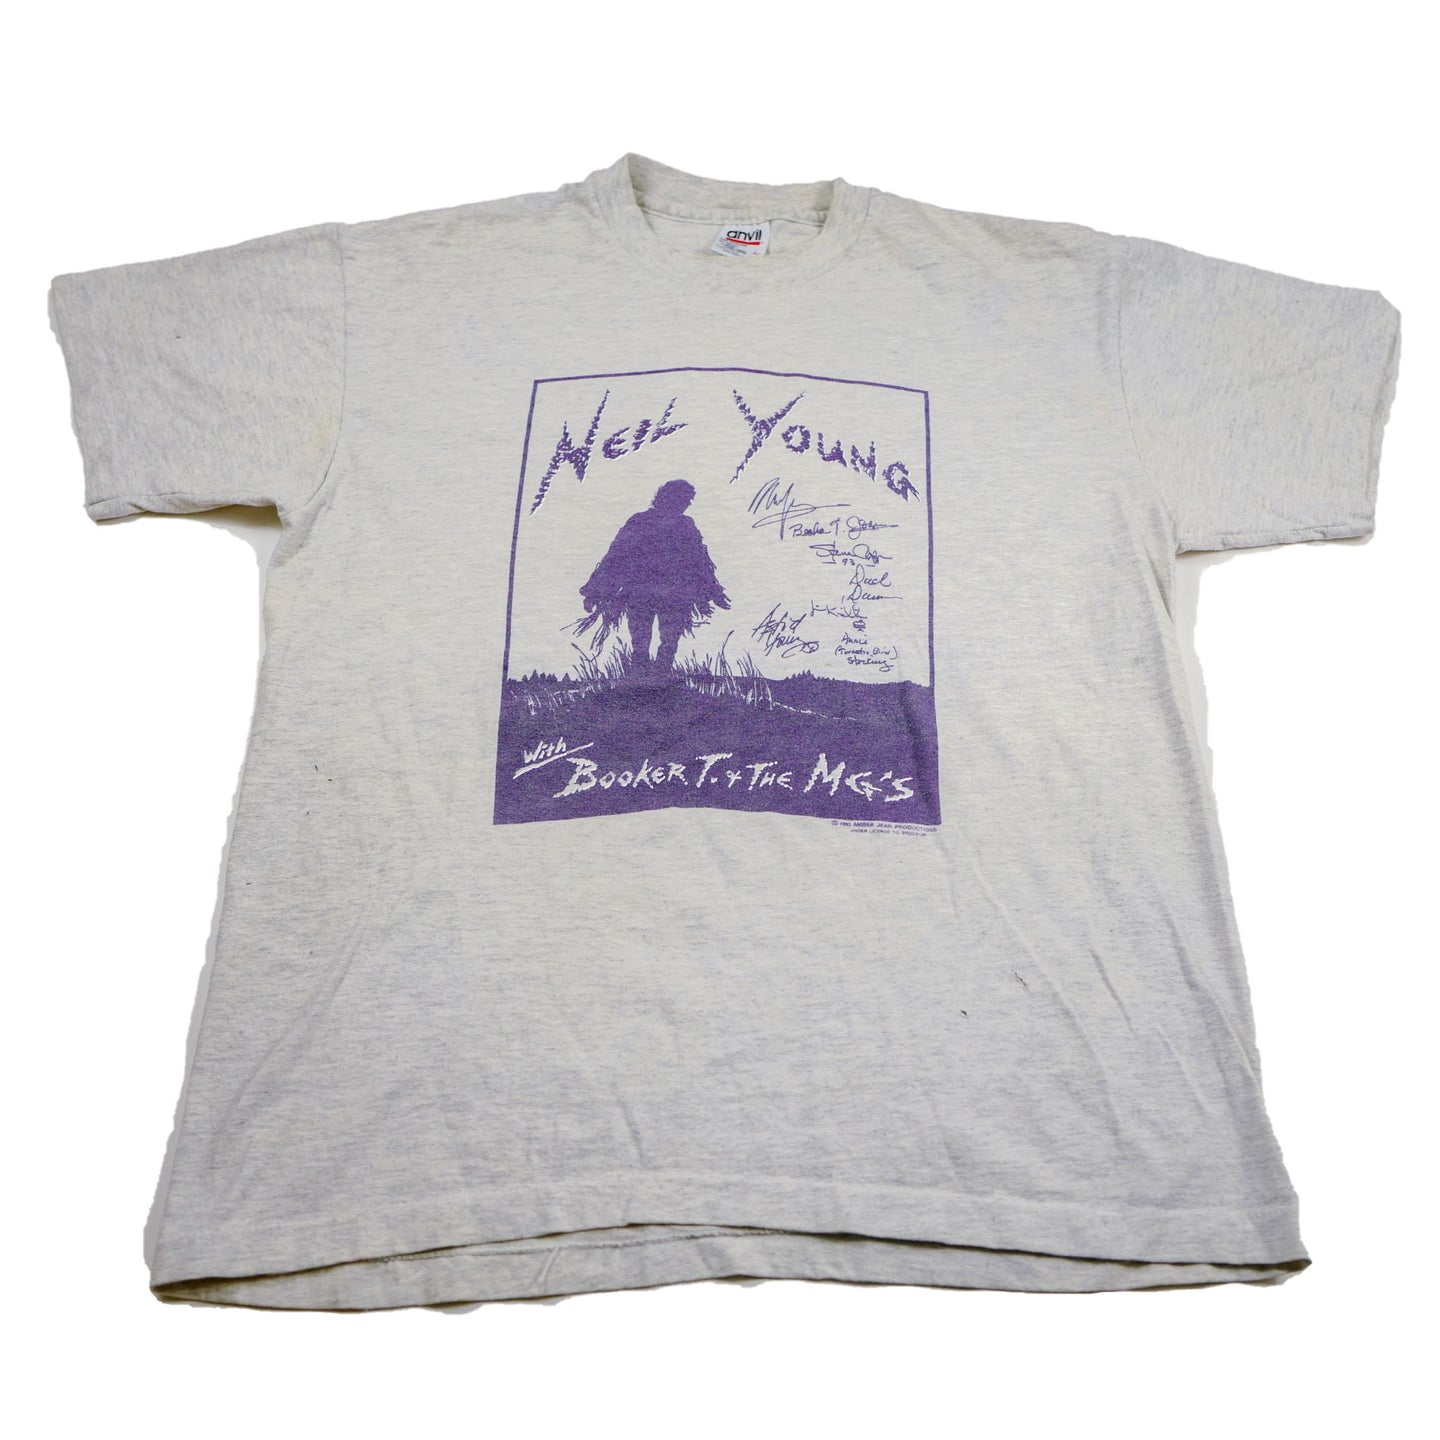 1993 Neil Young with Booker T or The MG's Tee